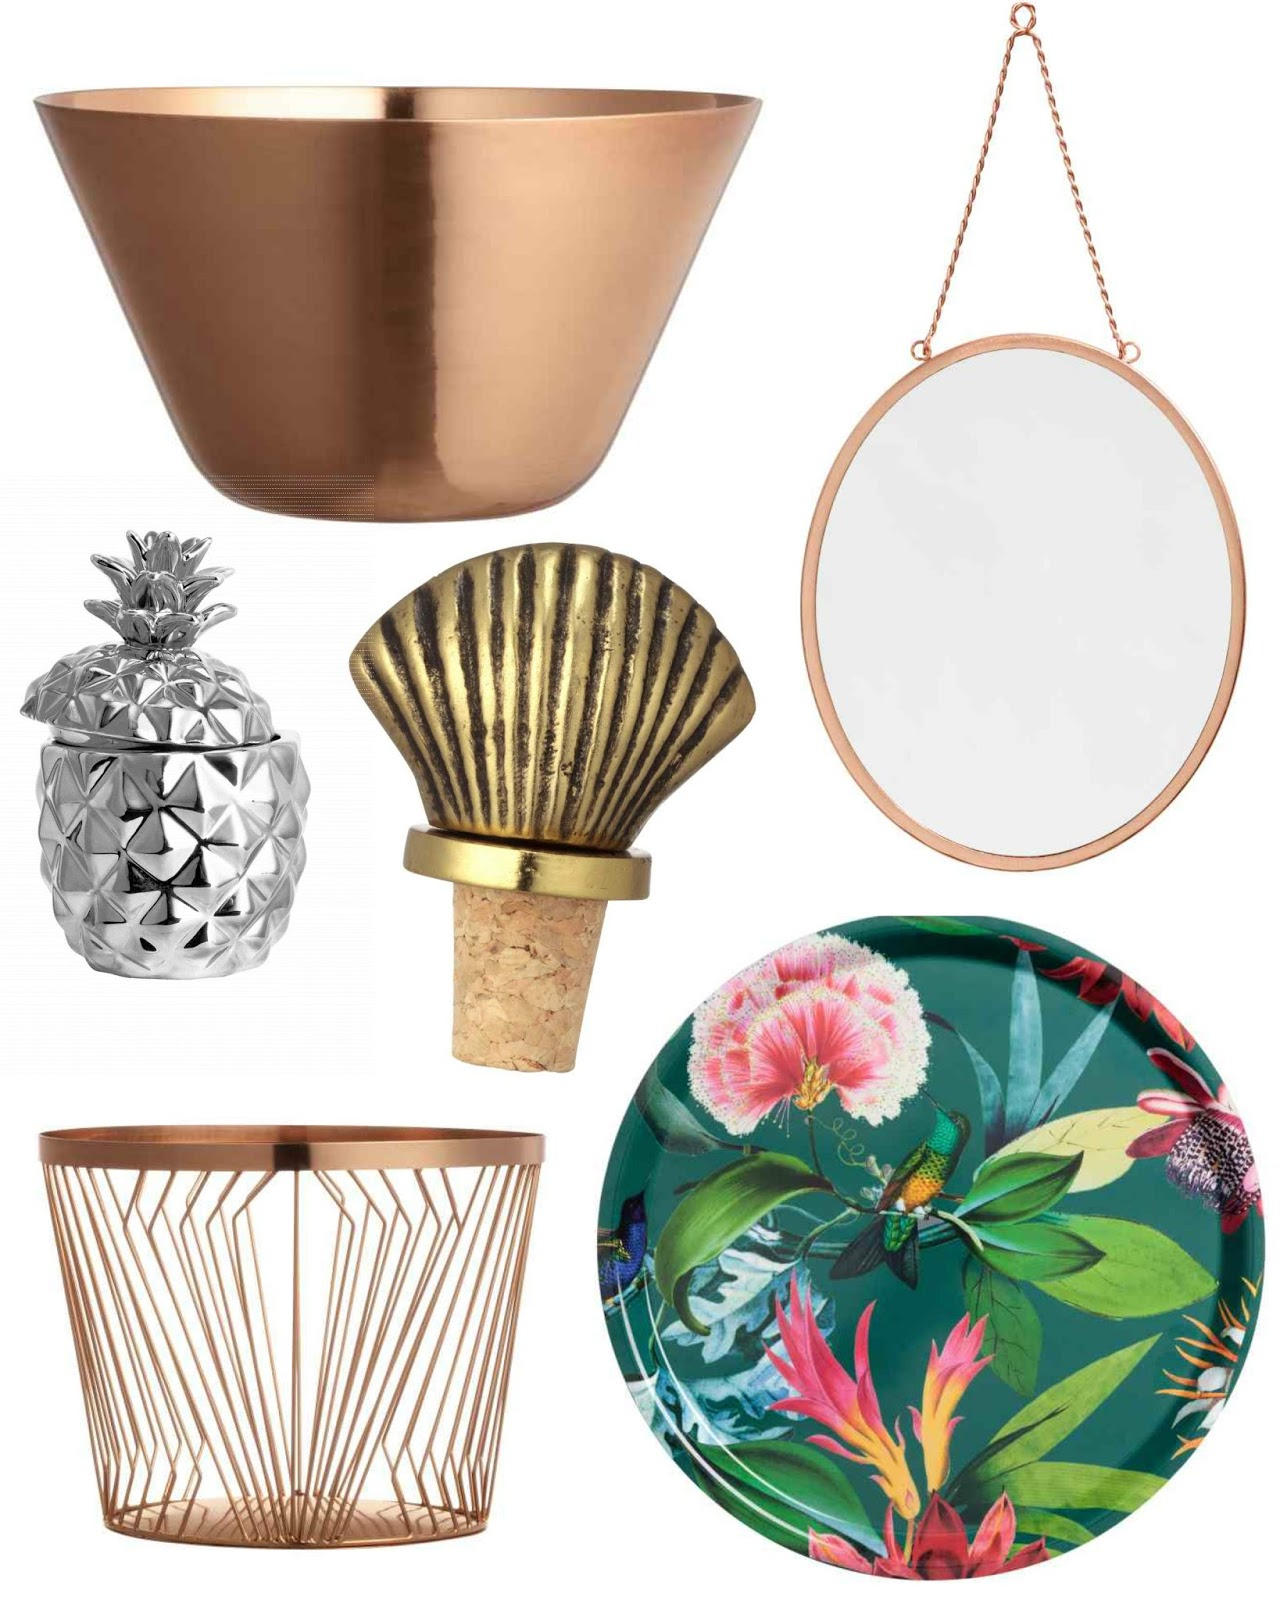 H&M Homeware Picks